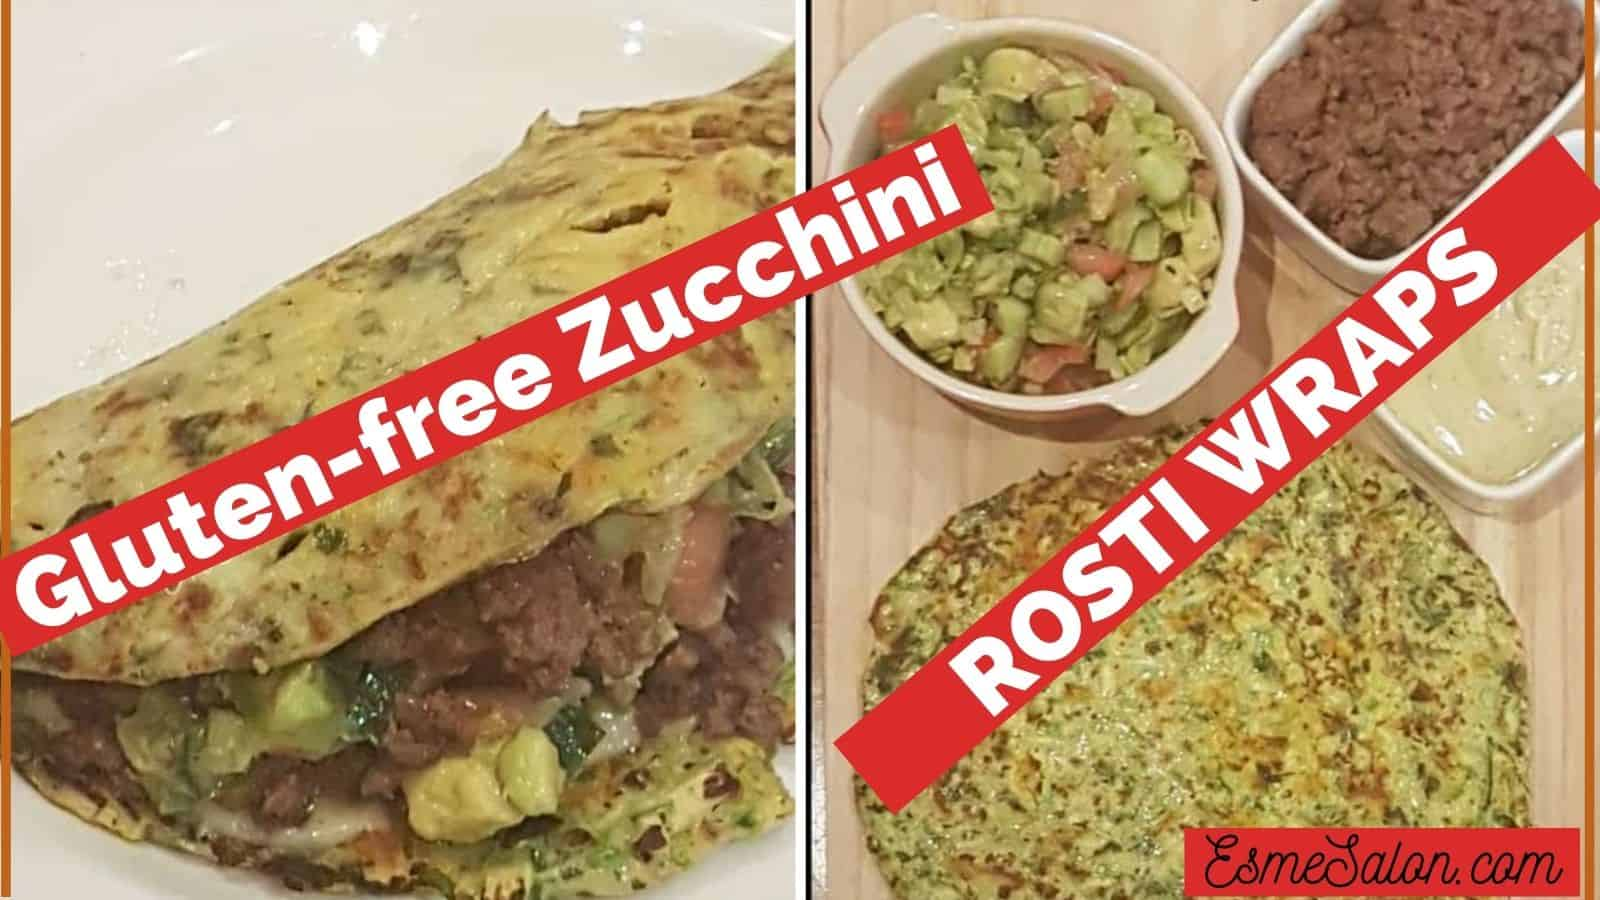 Gluten-free Zucchini Rosti Wraps with Veggies